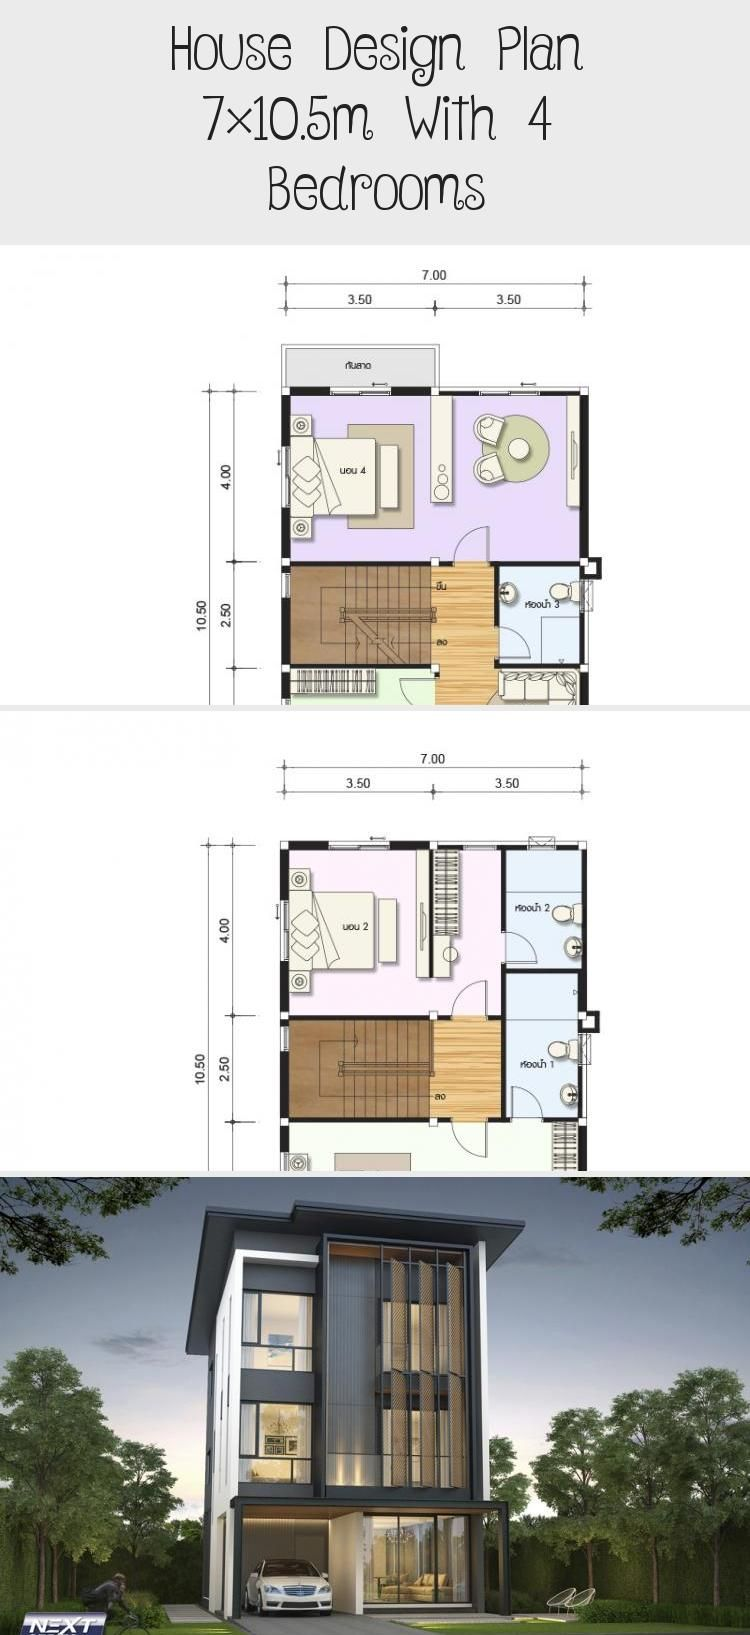 House Design Plan 7x10 5m With 4 Bedrooms Home Design With Plansearch Asianhousedesign Housed In 2020 Sustainable House Design Home Design Plans Beach House Design